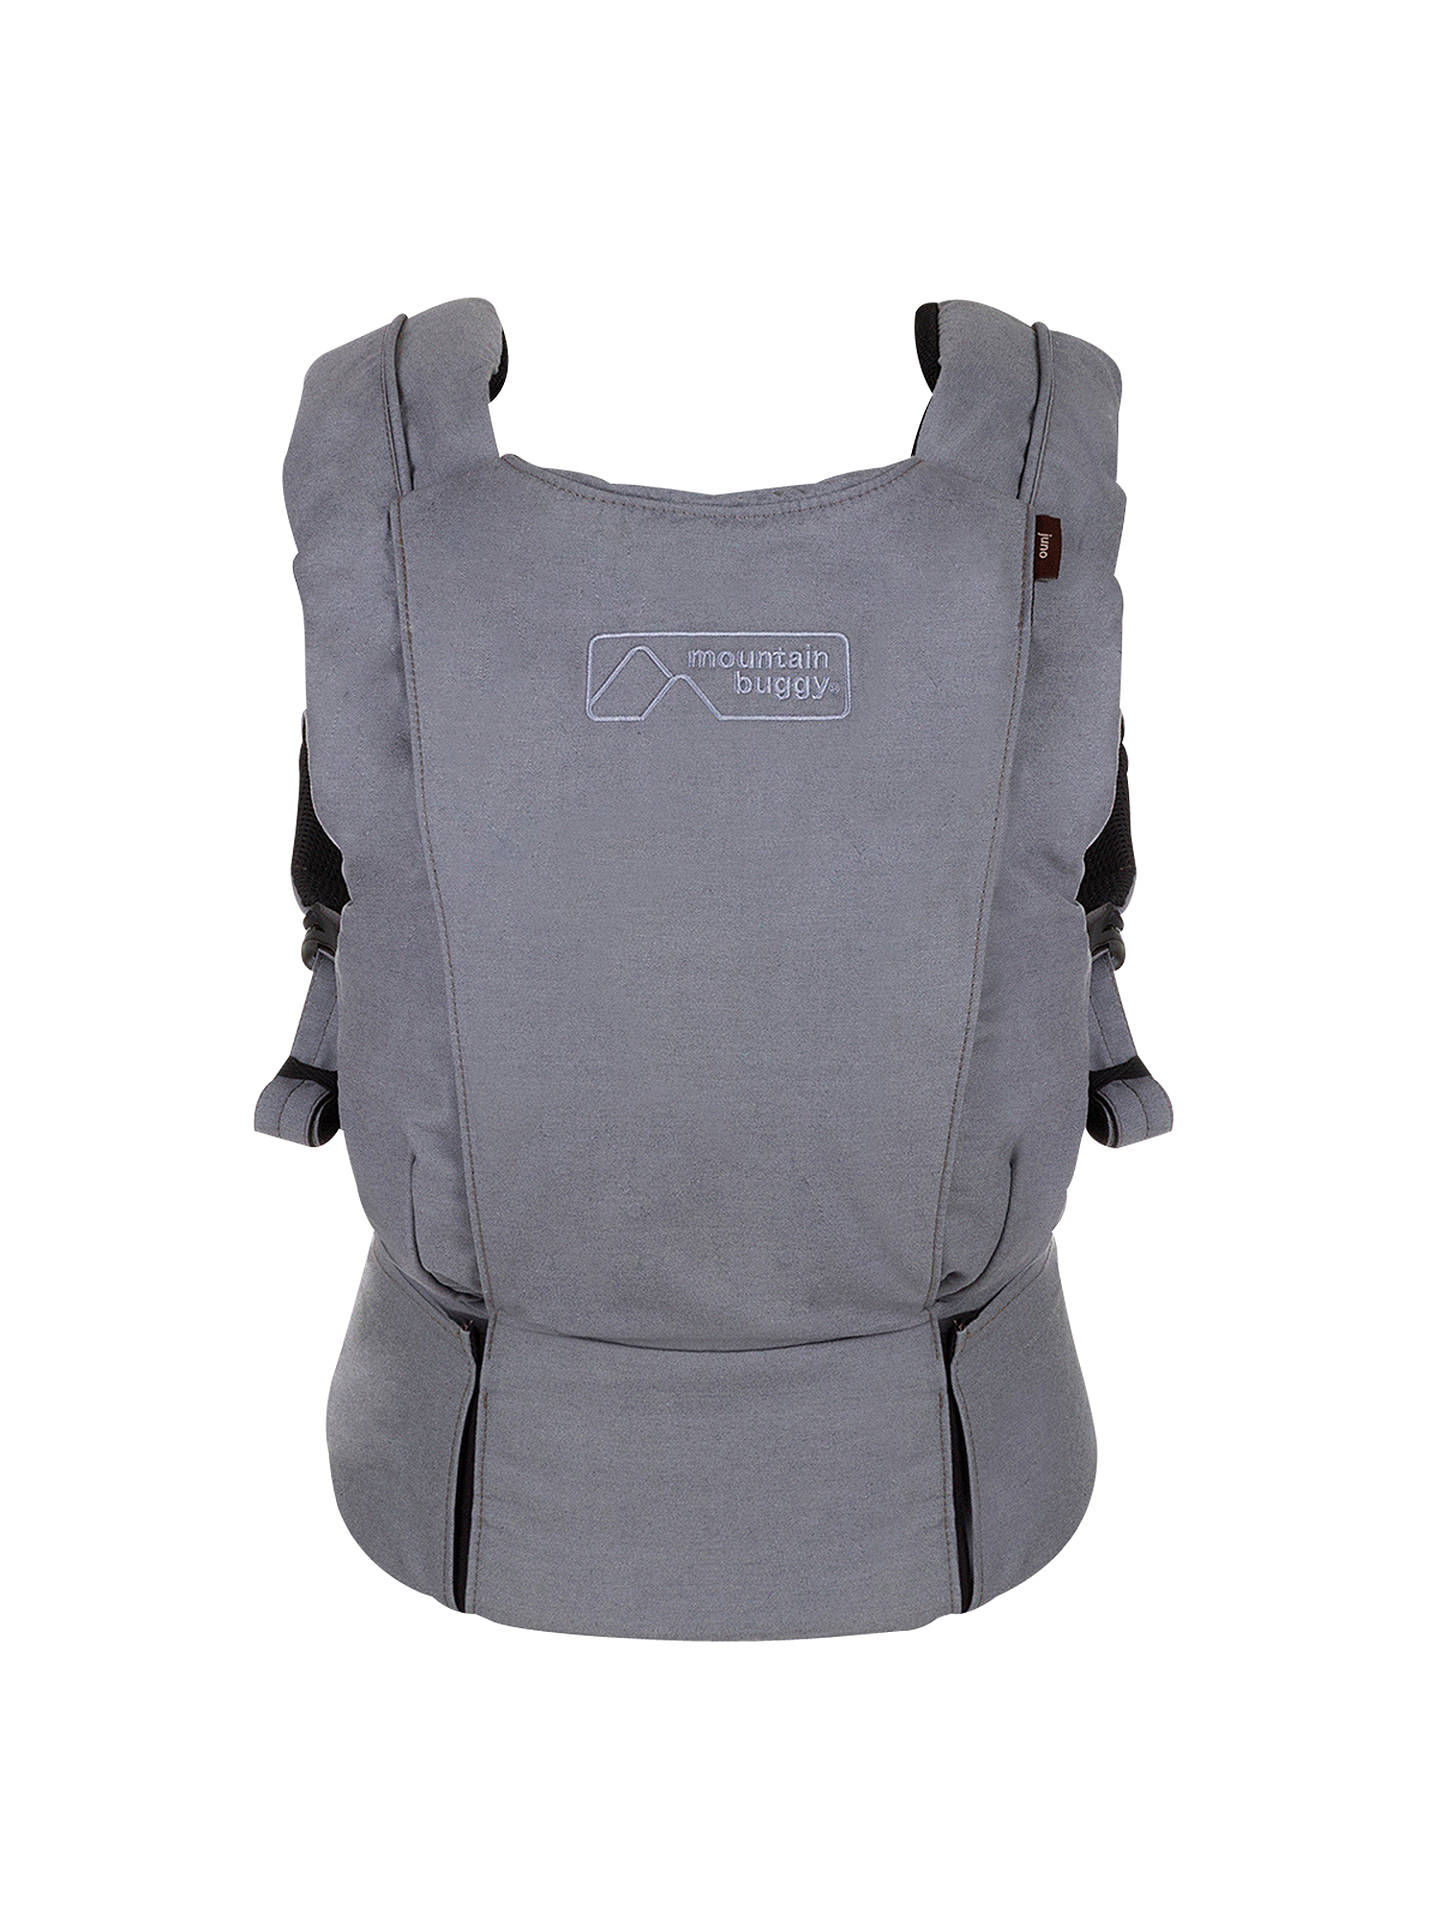 ab963673937 Buy Mountain Buggy Juno Baby Carrier